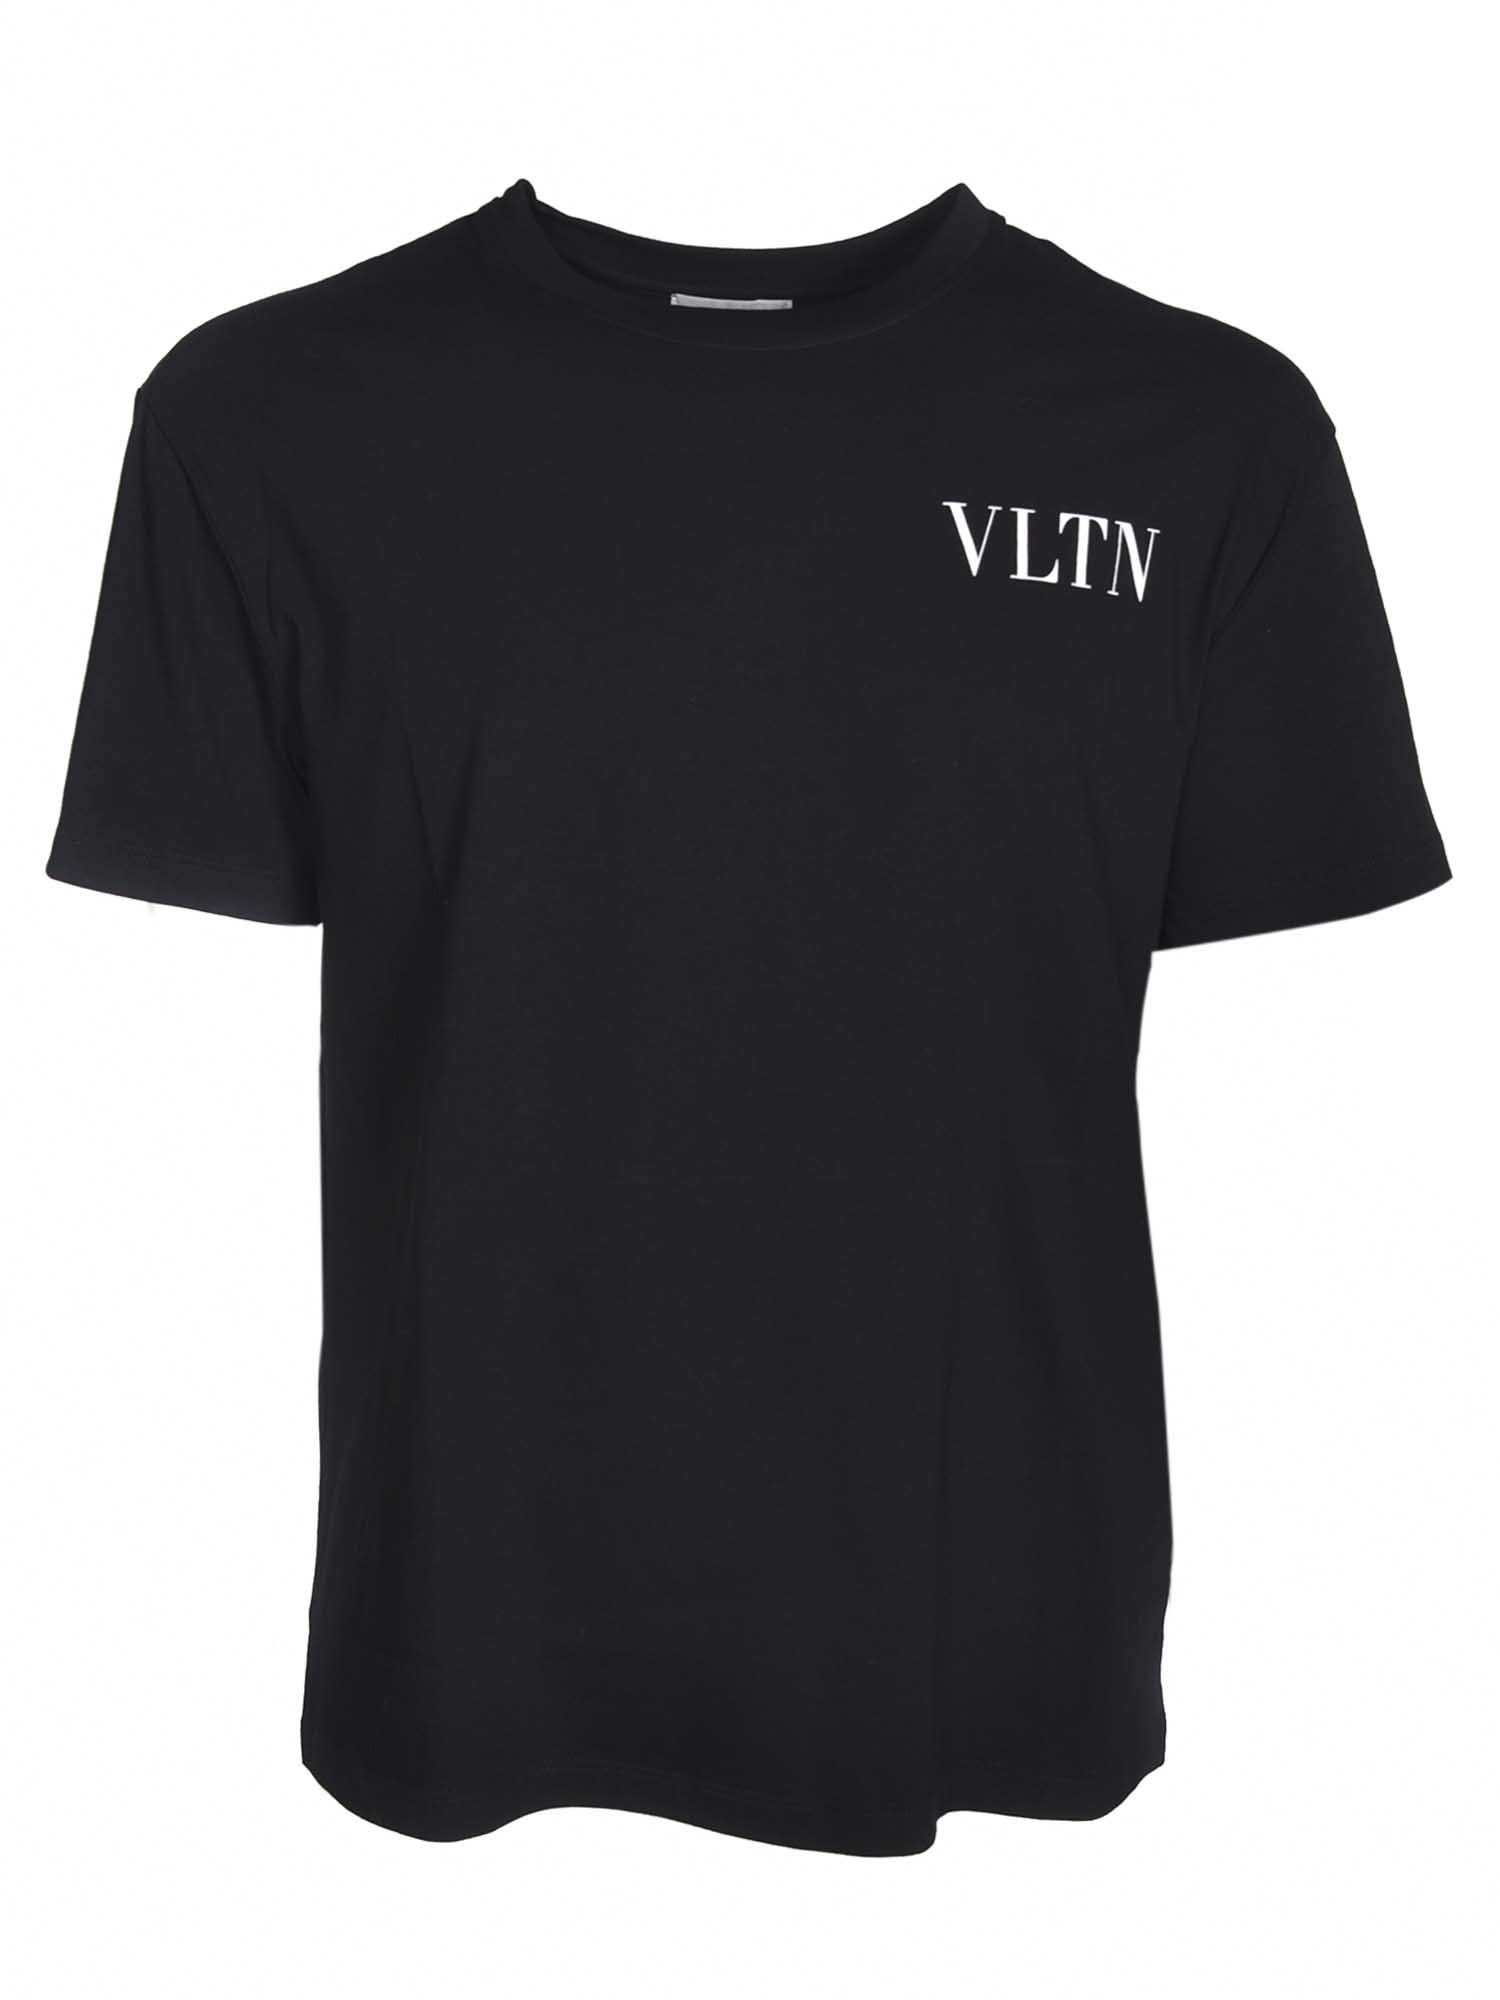 Valentino LOGO T-SHIRT IN BLACK